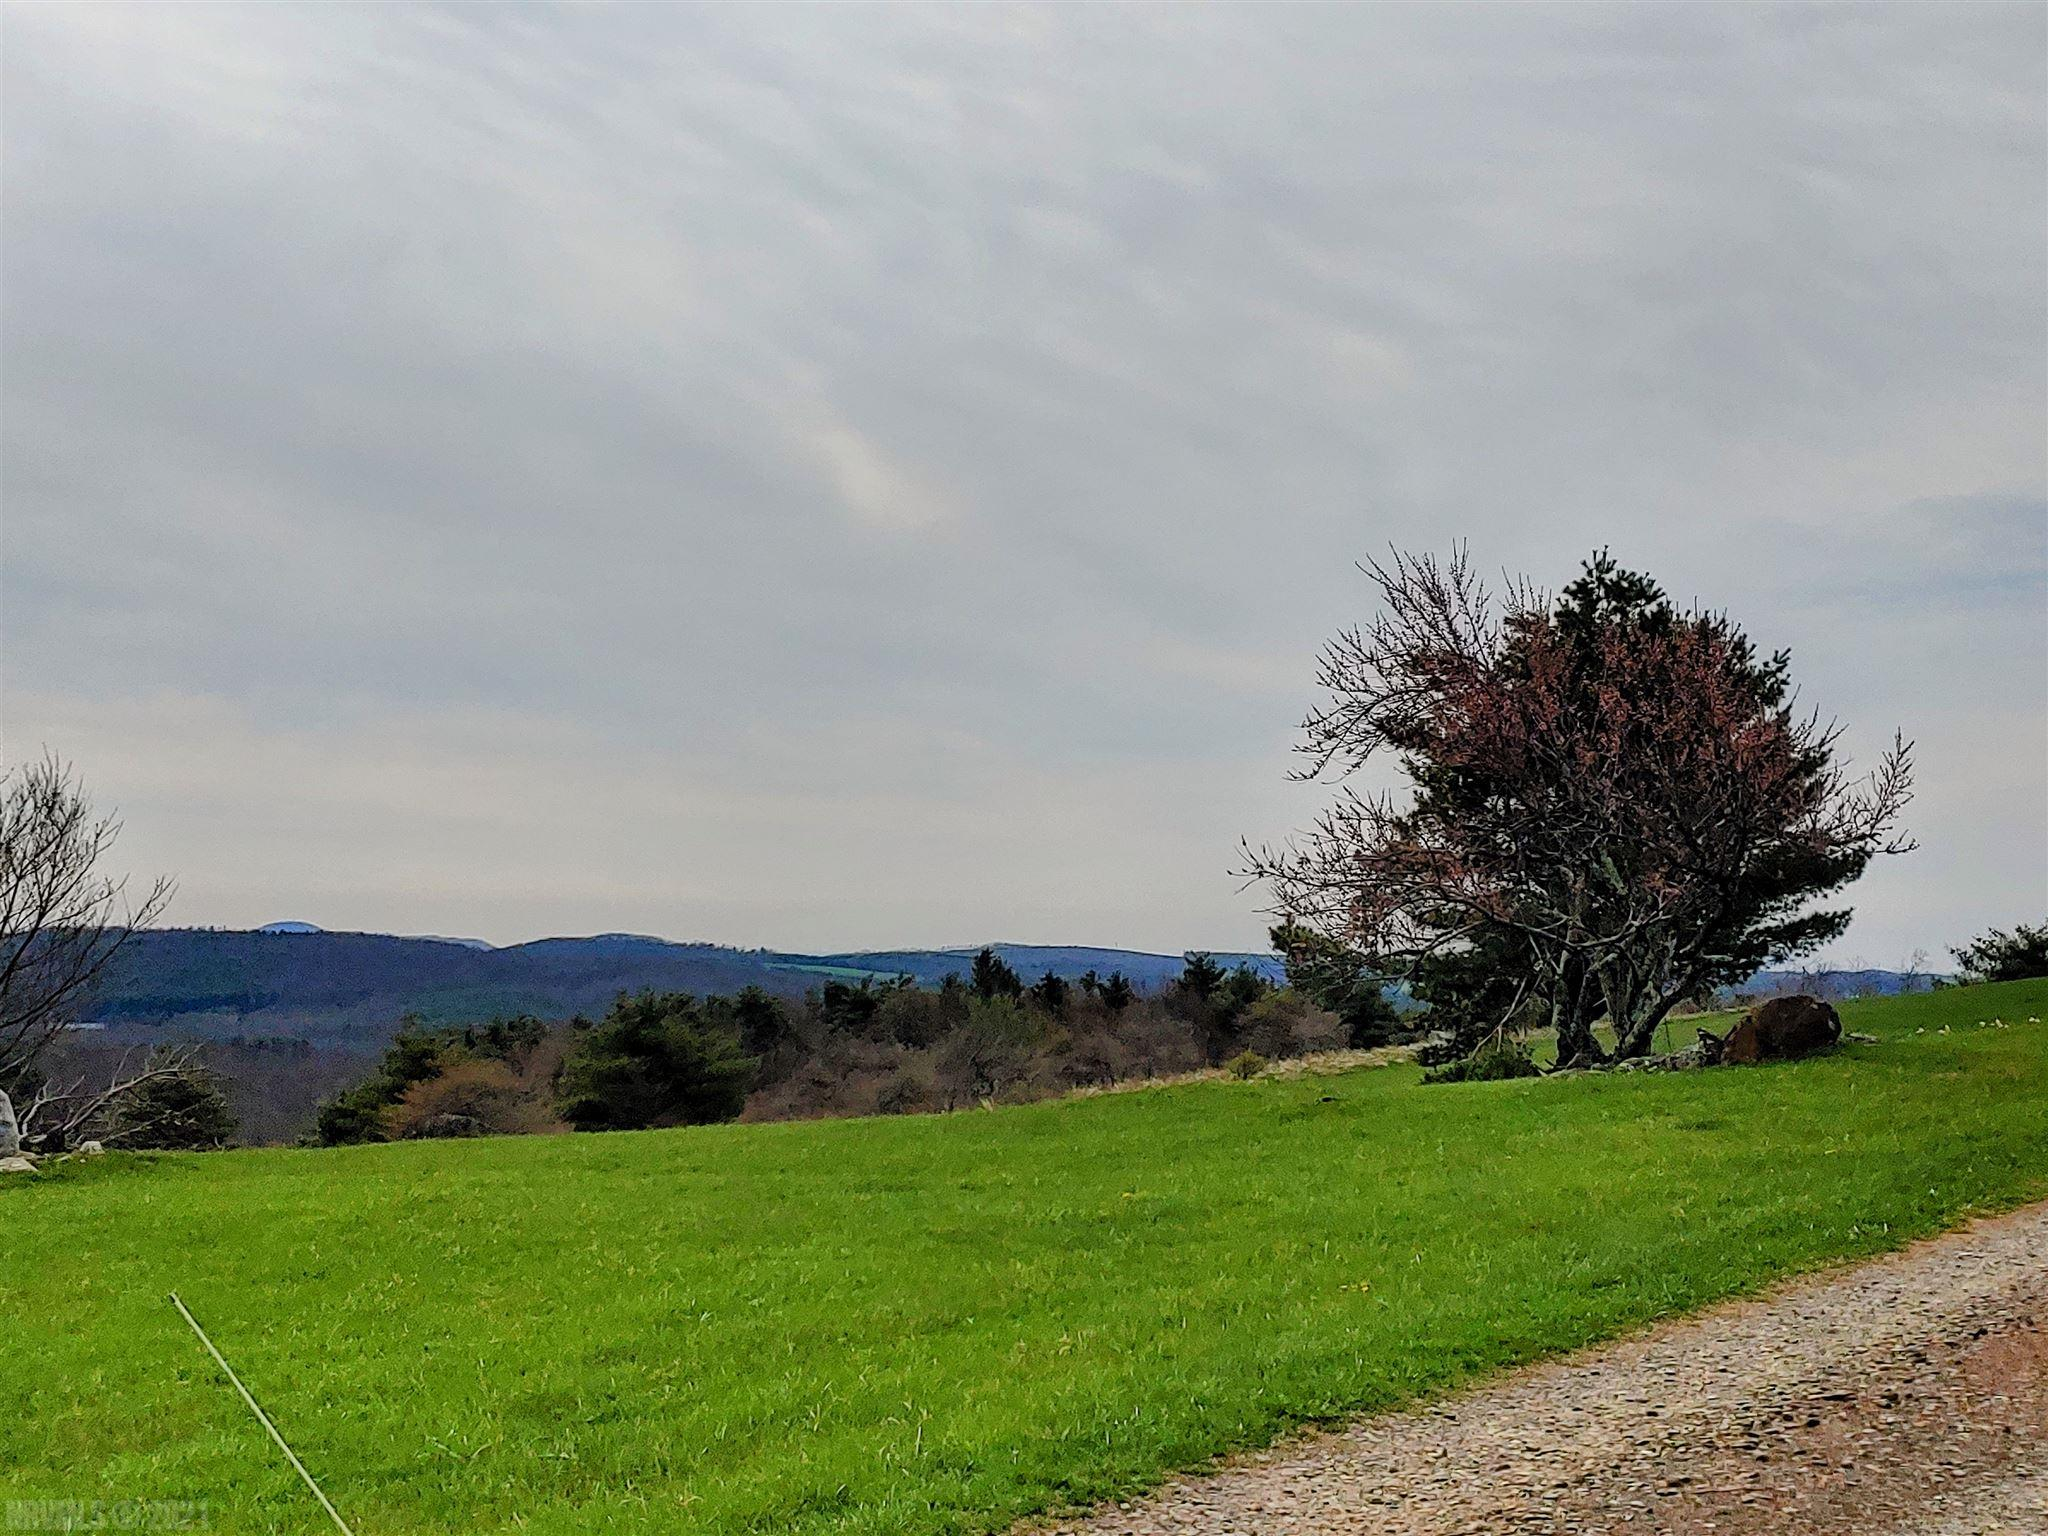 Enjoy the views from this ridge top property! Level 2.7 acre lot adjacent to the Blue Ridge Parkway. Just a few minutes to Hwy 58 and Chateau Morrisette Winery!